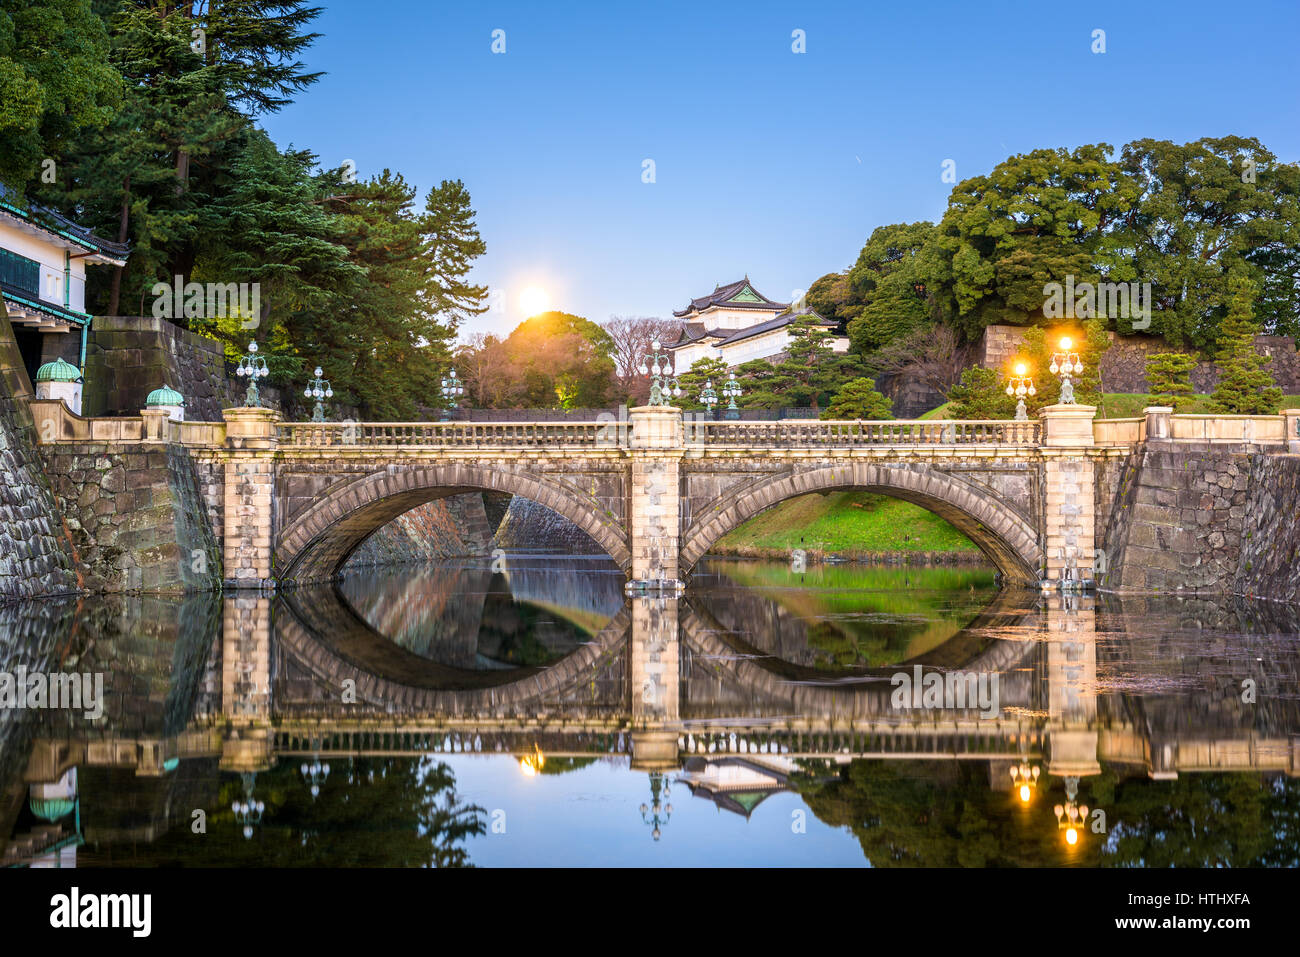 Tokyo, Japan at the Imperial Palace moat and bridge at night. - Stock Image